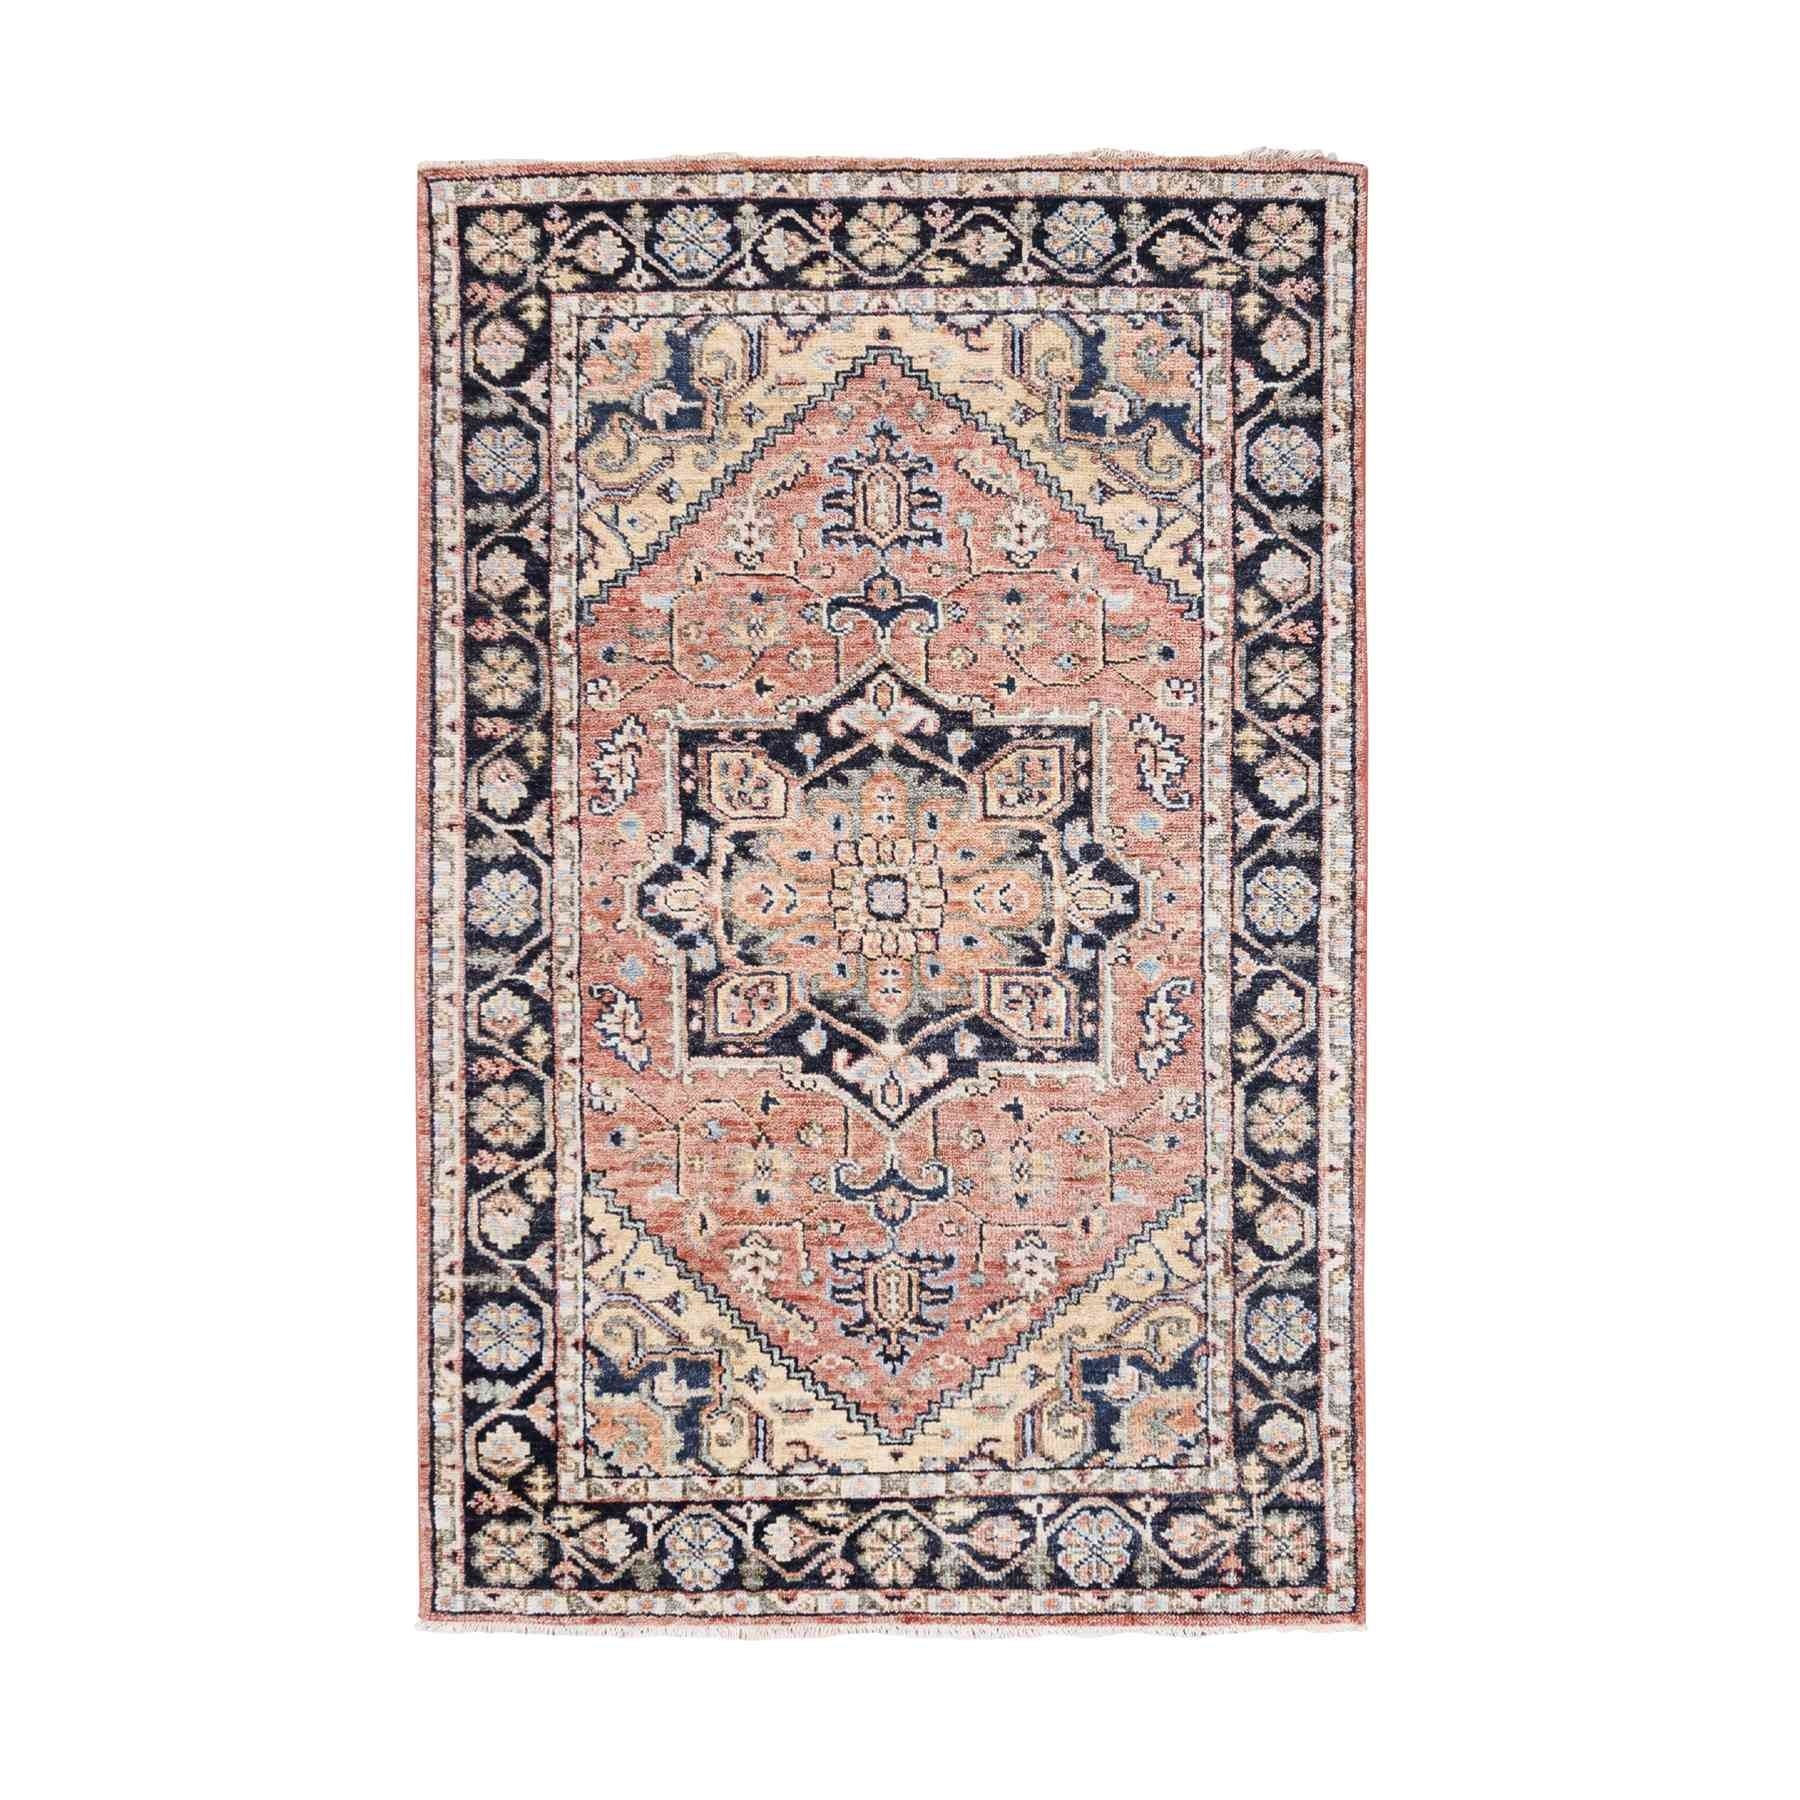 Tribal & Geometric Rugs LUV559980